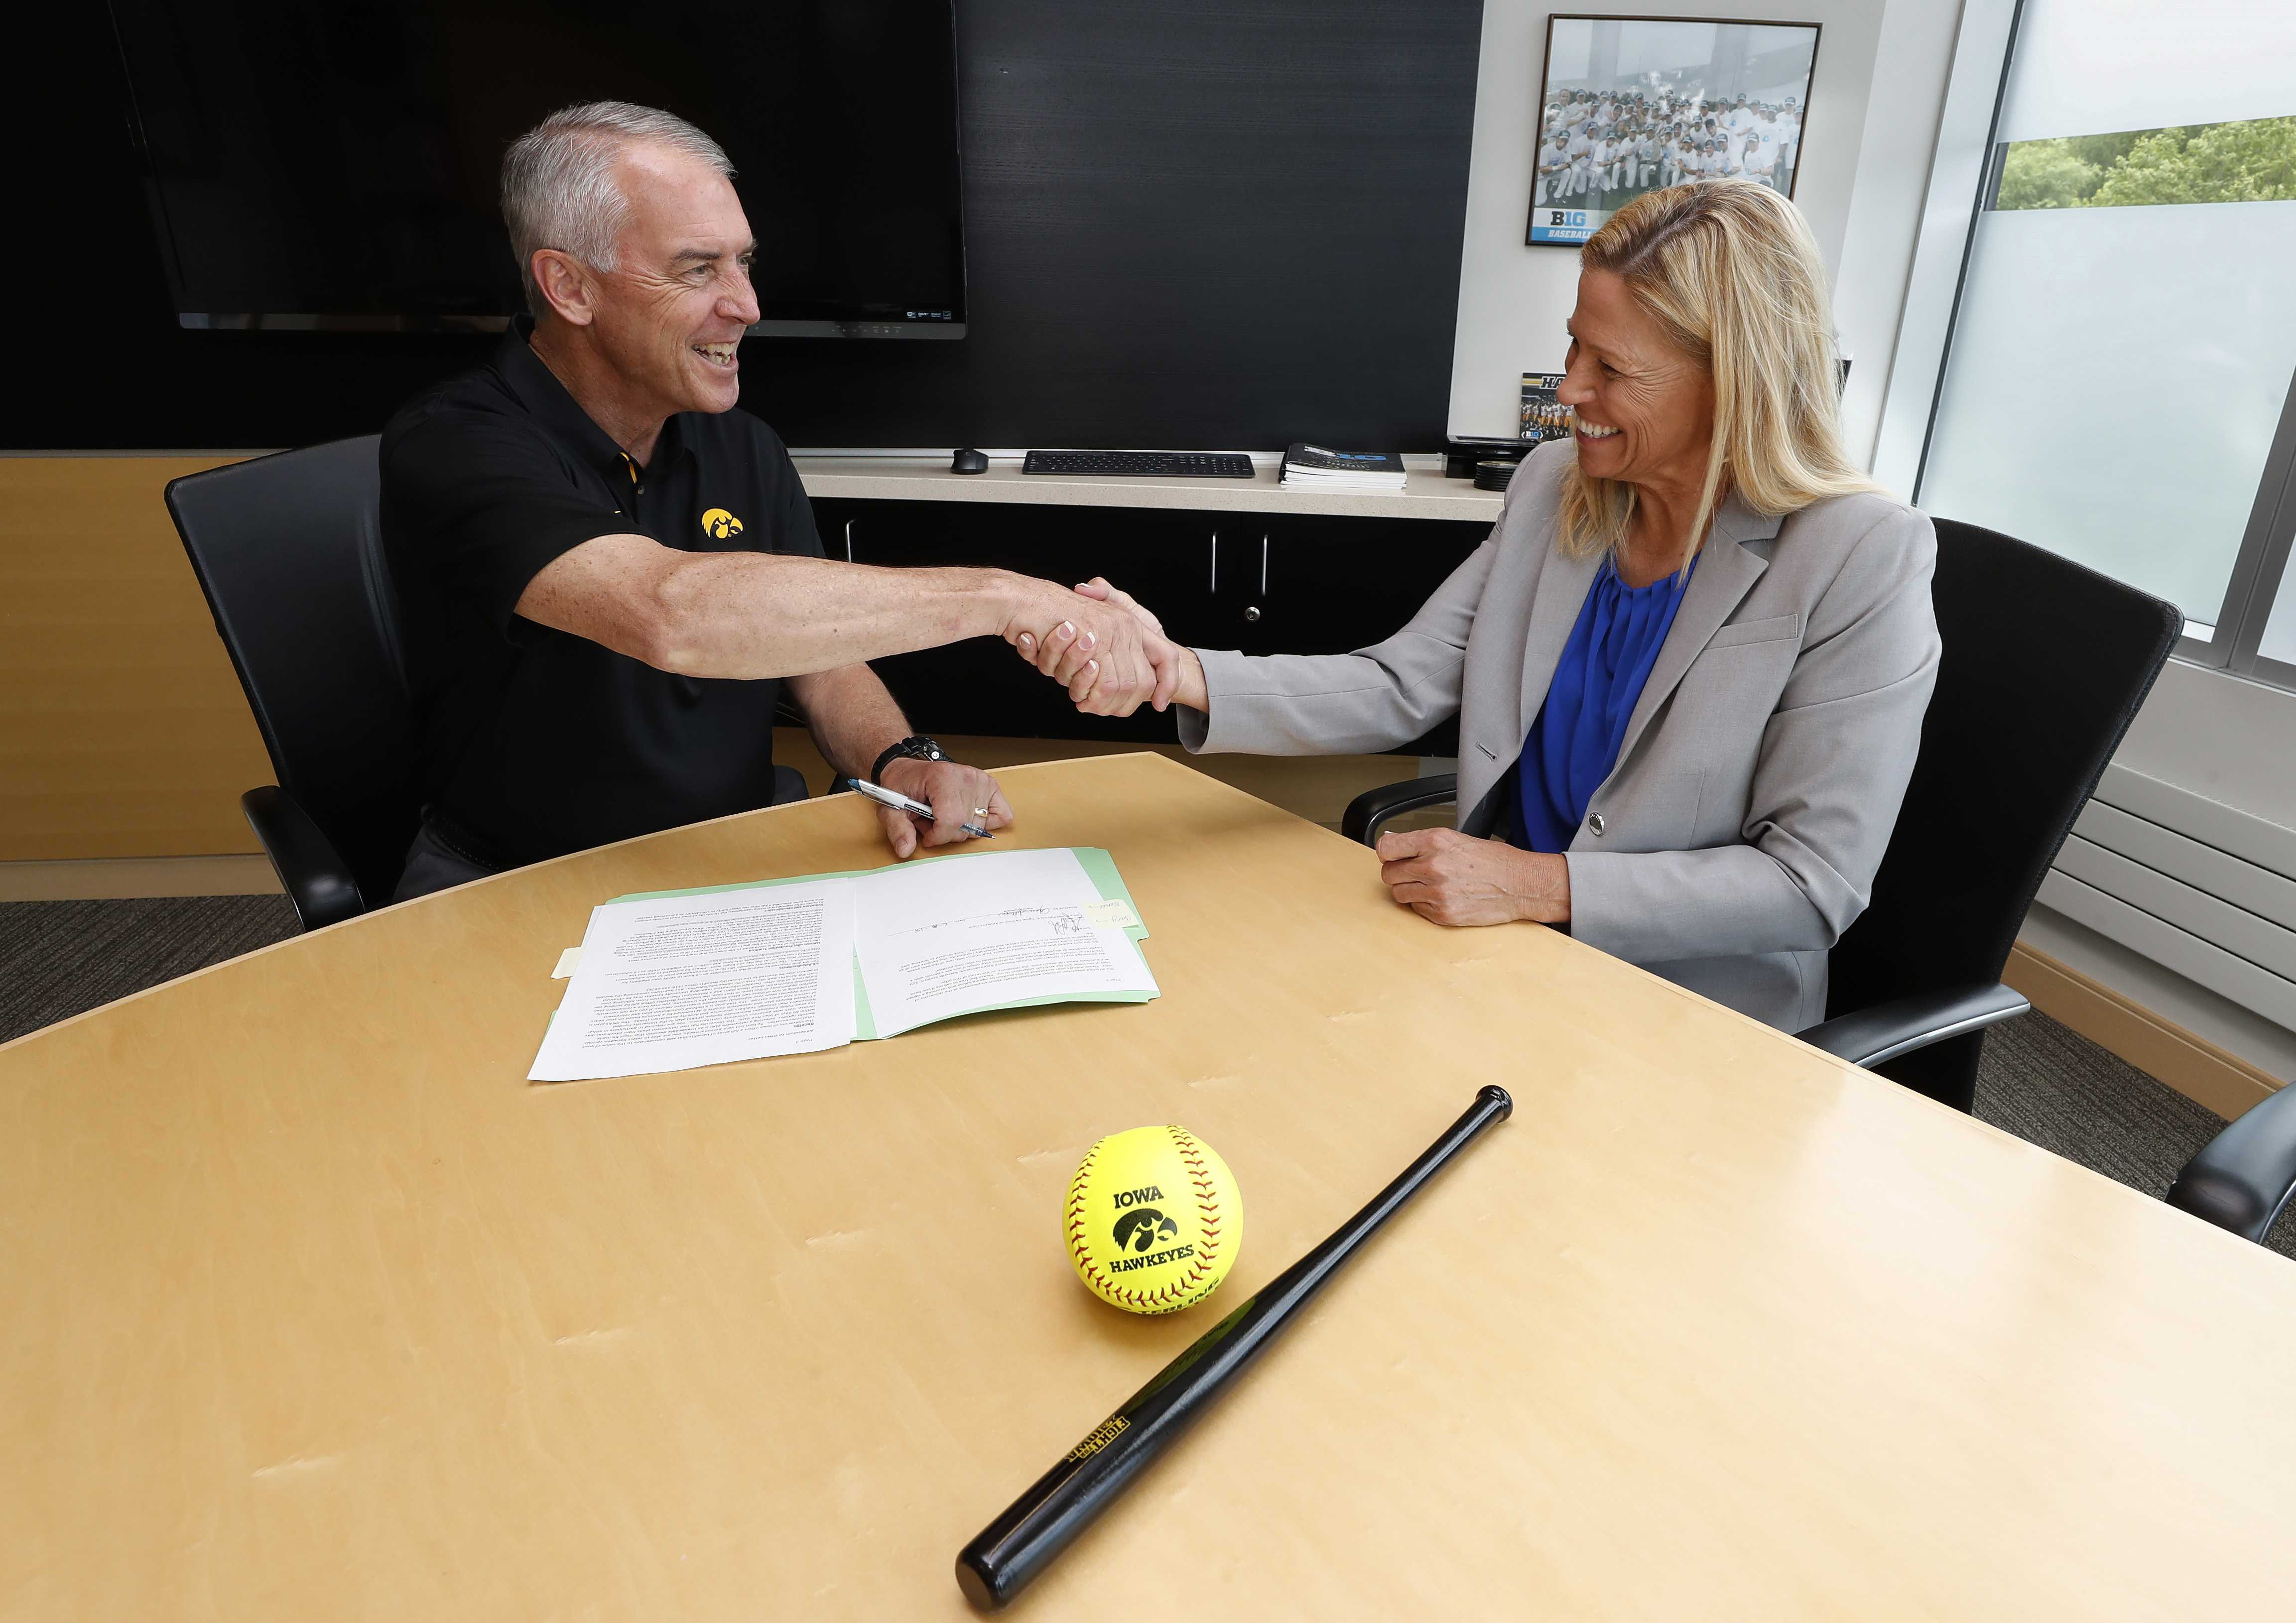 New University of Iowa Softball head coach Renee Gillispie shakes hands with Henry B. and Patricia B. Tippie Director of Athletics Chair Gary Barta after accepting the position Friday, June 8, 2018 at Carver-Hawkeye Arena.